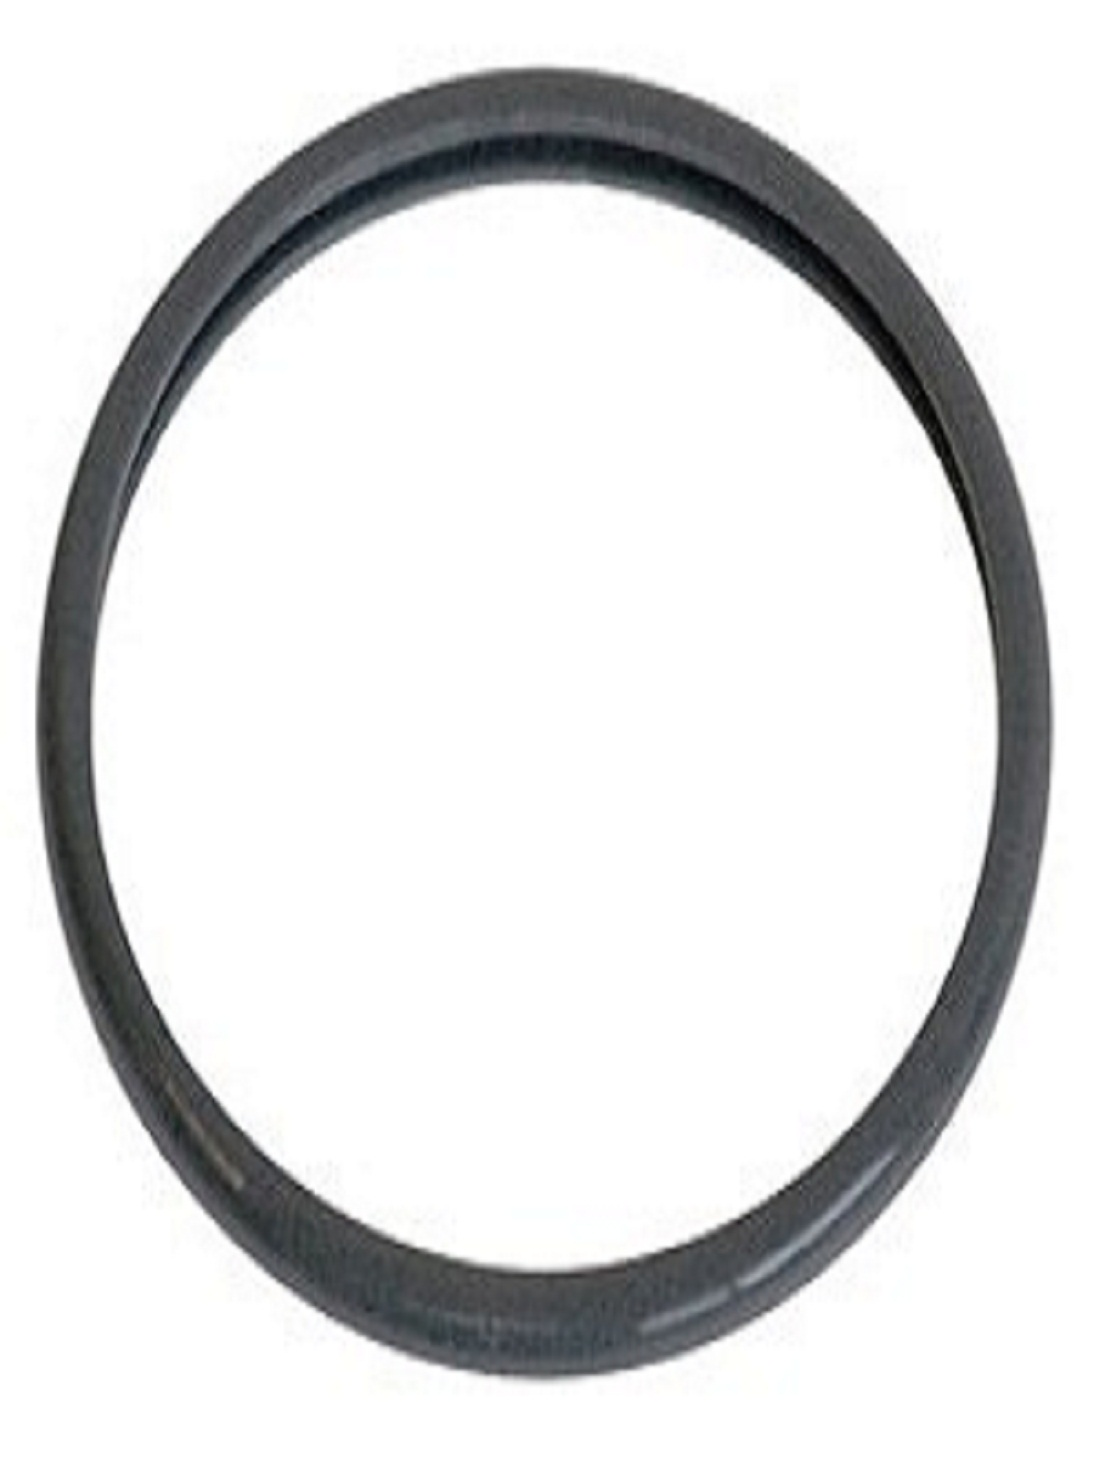 Snap On Rims: For Pediatric & Cardiology III Gray 36551